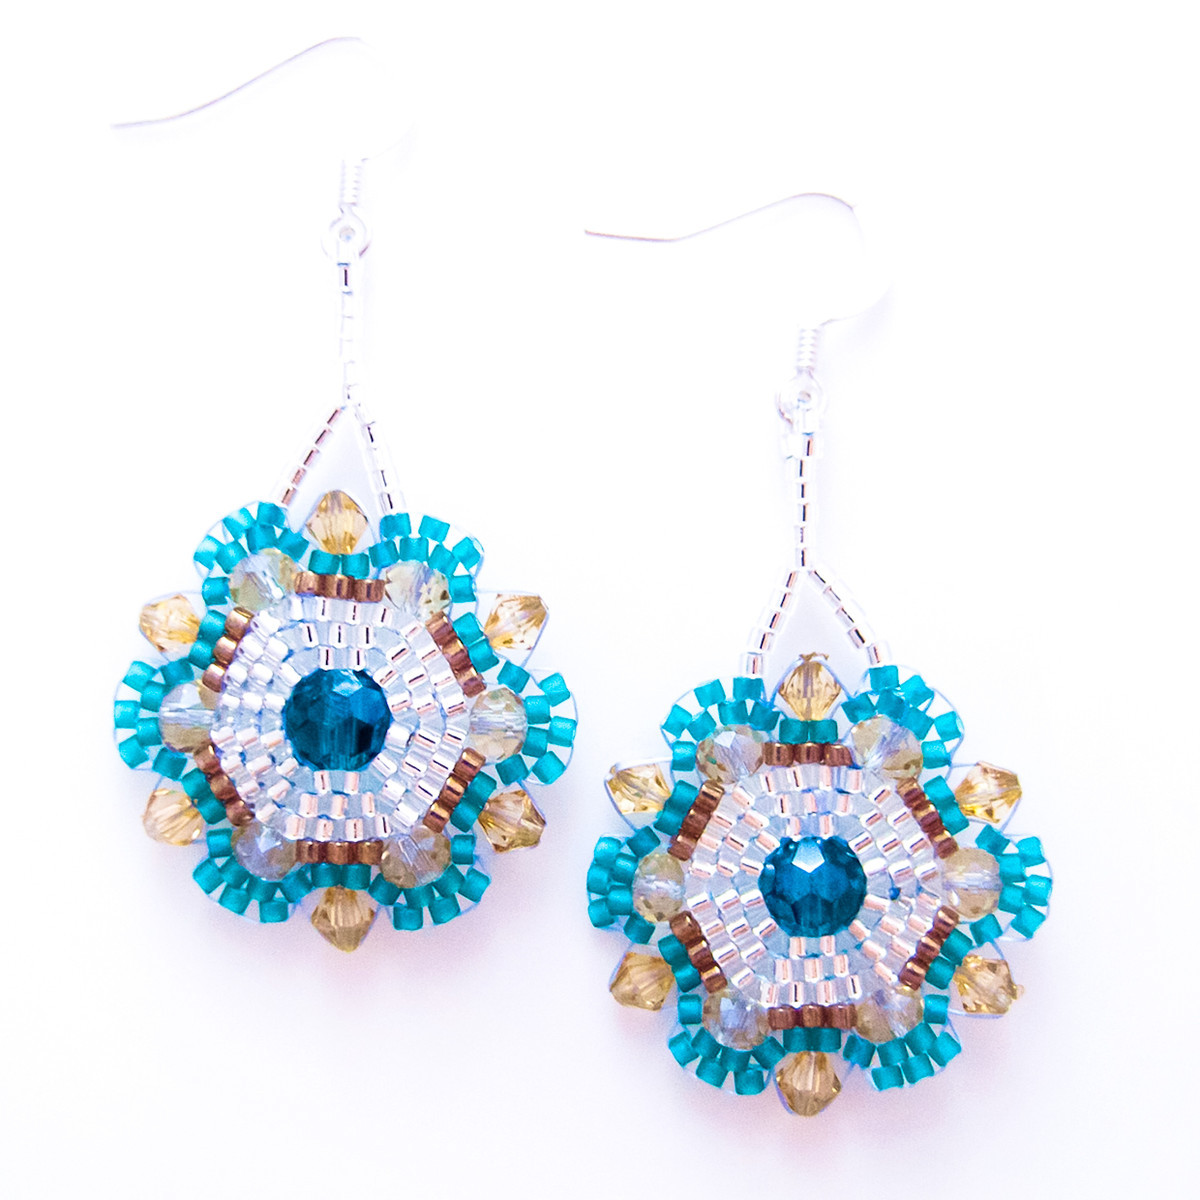 12 PIECES LEFT ~ $38 each! Caribbean Flower Earrings now on FAB.comAll is groovy with JeannieRichard's refined take on the hippy-dippy flower. Nothing really resurrects or celebrates the cheer of summer better than a pair of delightfully upbeat accessories like the Bohemian Caribbean Flower Earrings.